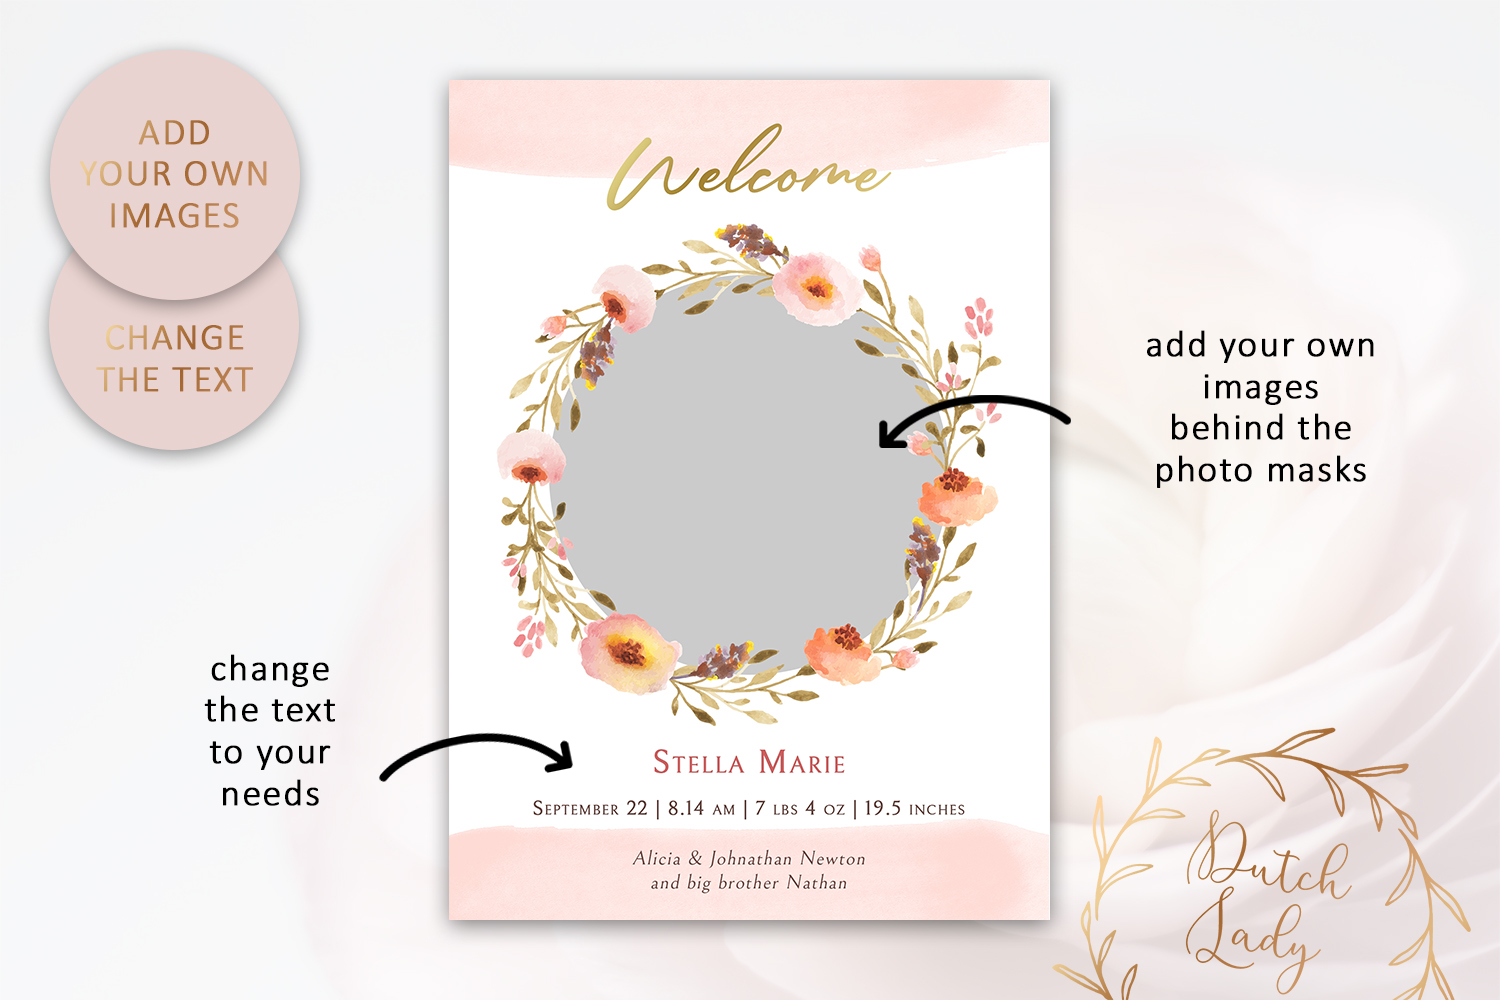 PSD Birth Announcement Card Template - Design #4 example image 2